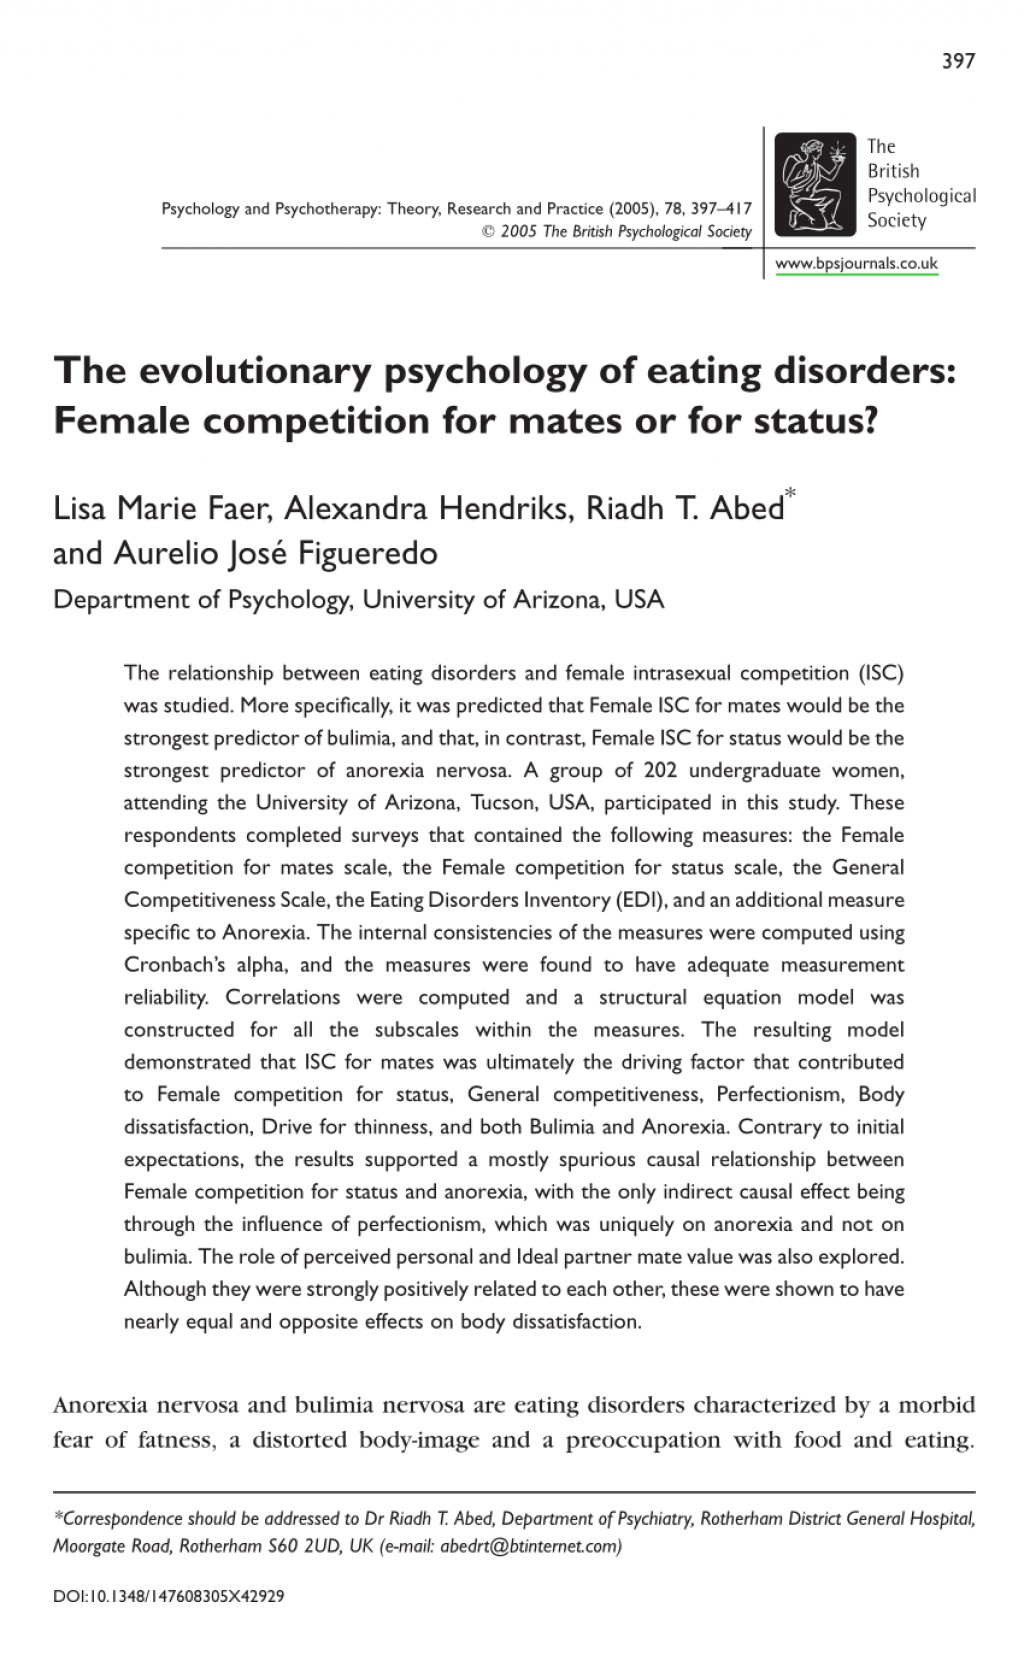 006 Psychology Research Paper On Eating Disorders Top Topics Large